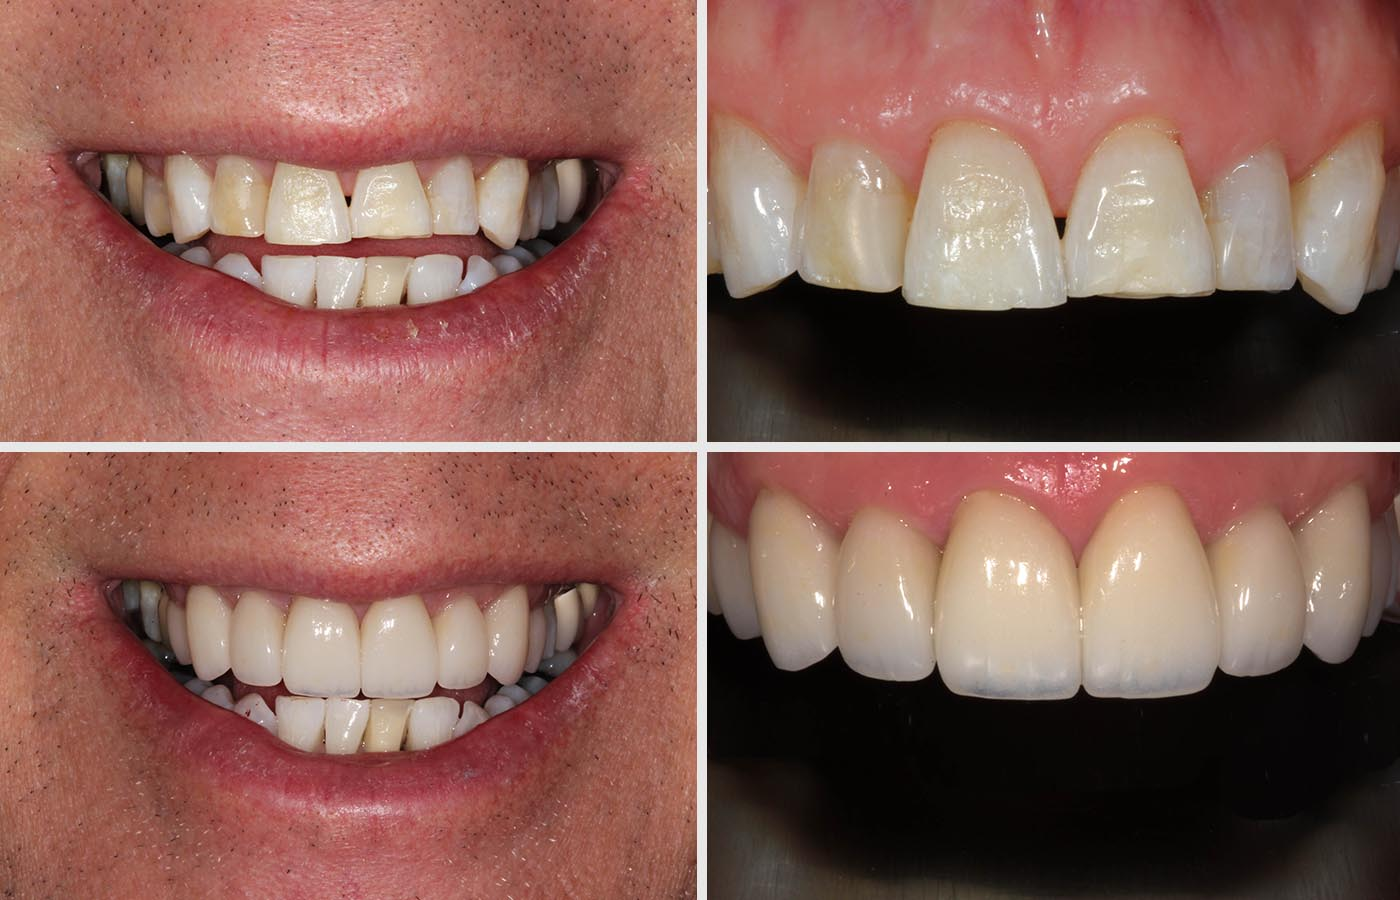 Veneers by Dental Elements in Leatherhead